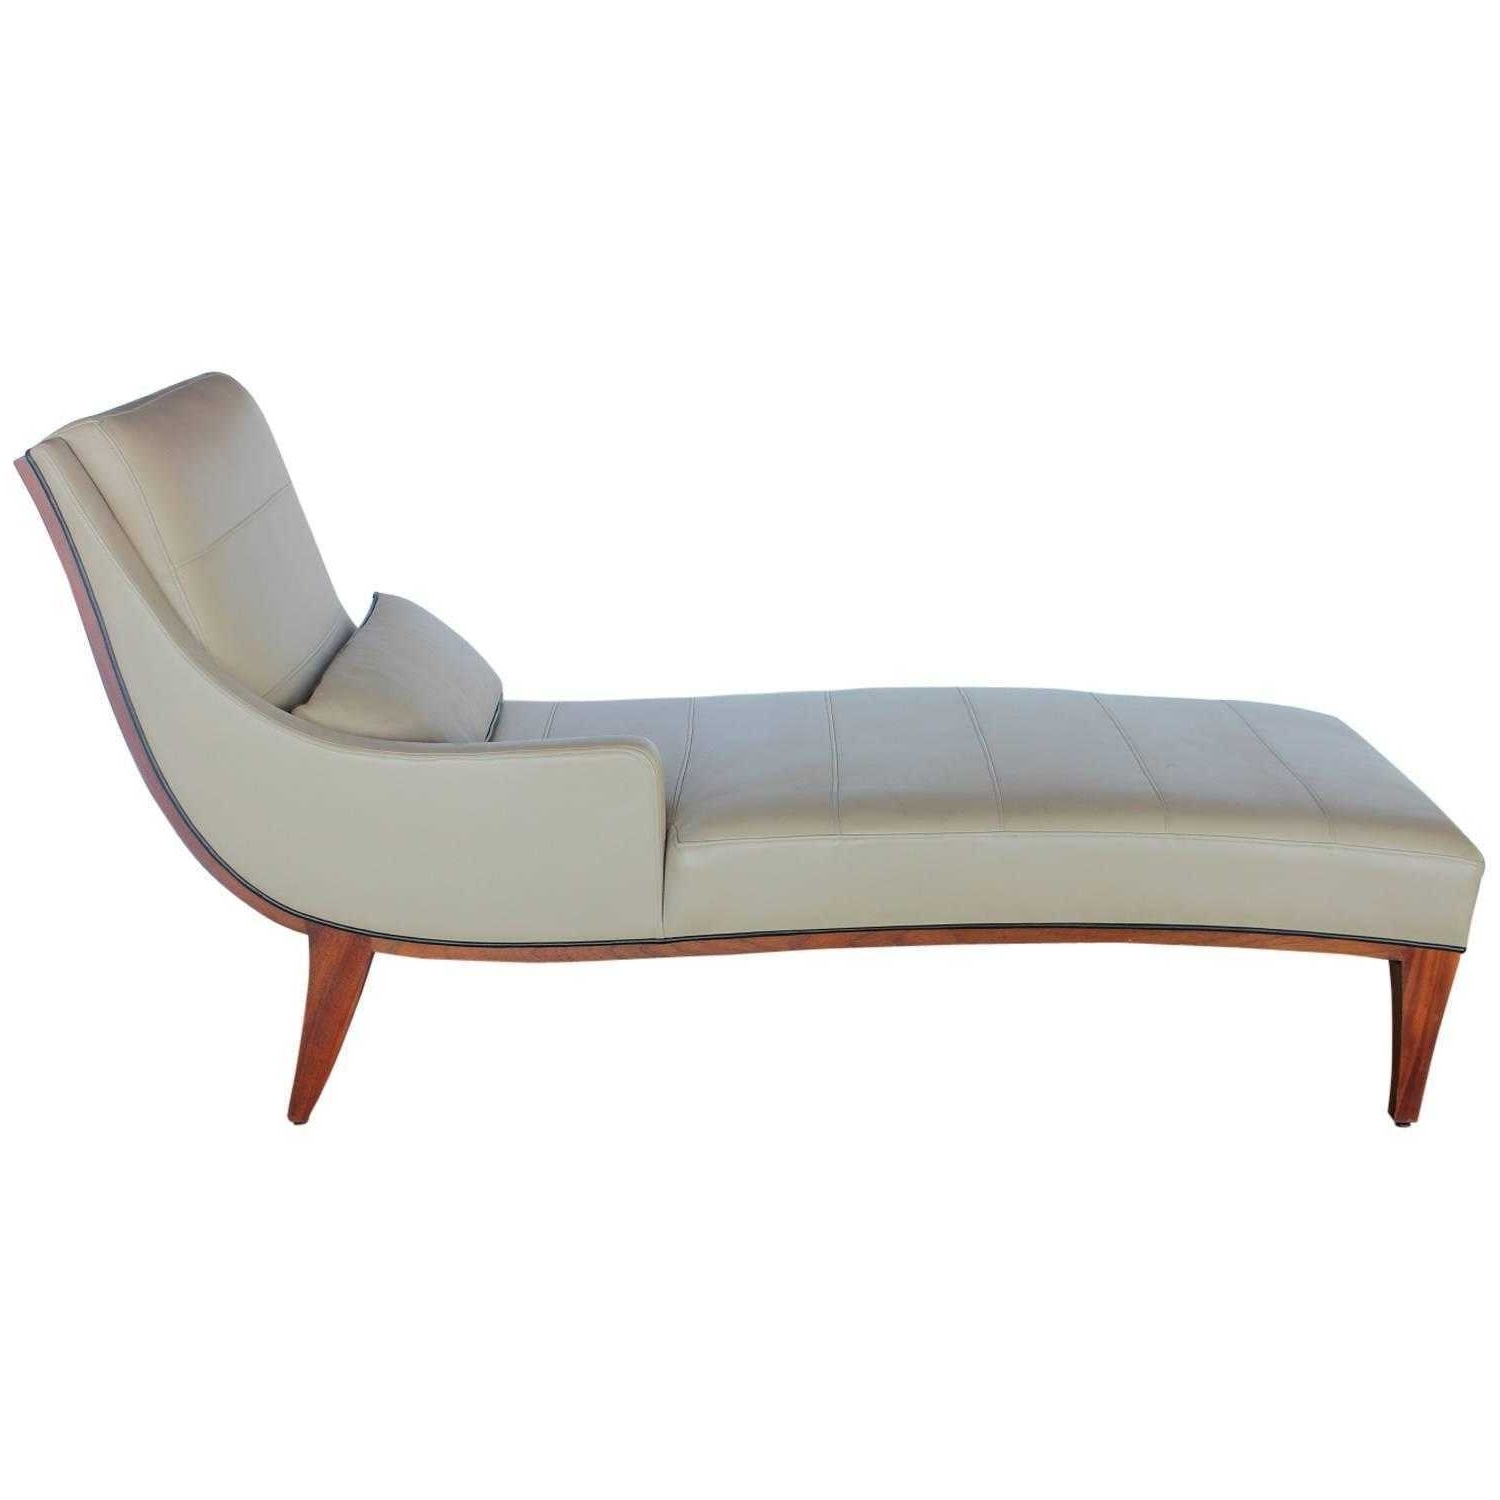 Fashionable Modern Chaise Lounges Within Modern Chaise Lounges – Rpisite (View 3 of 15)